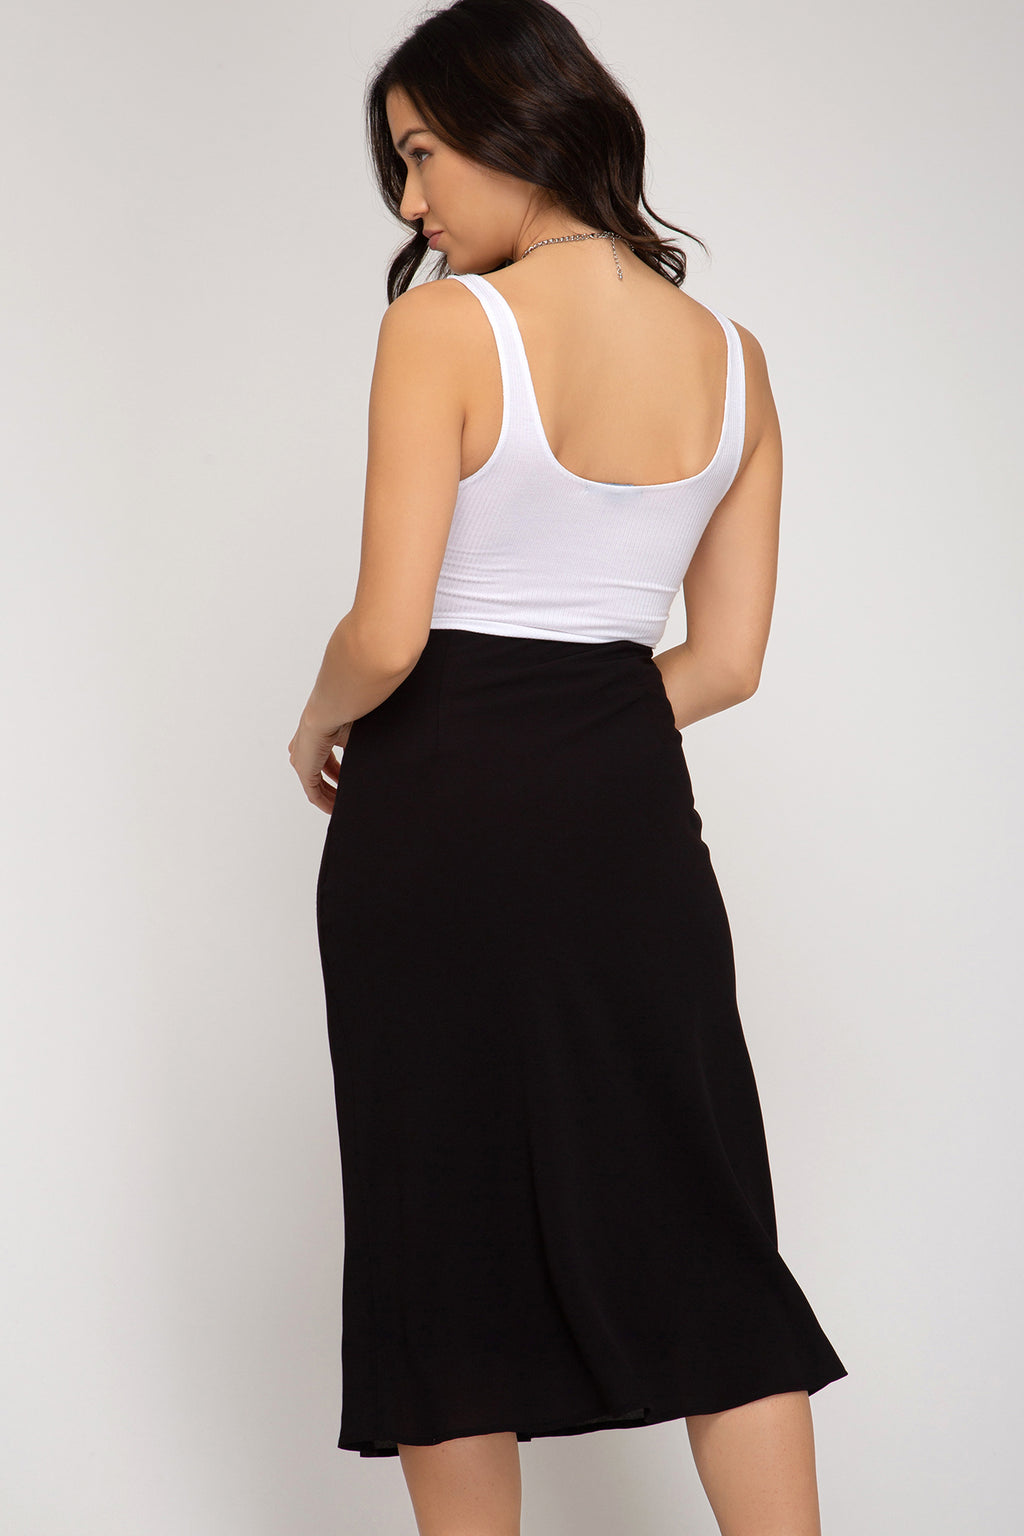 Black Midi Skirt - Artemisia Clothing Shop